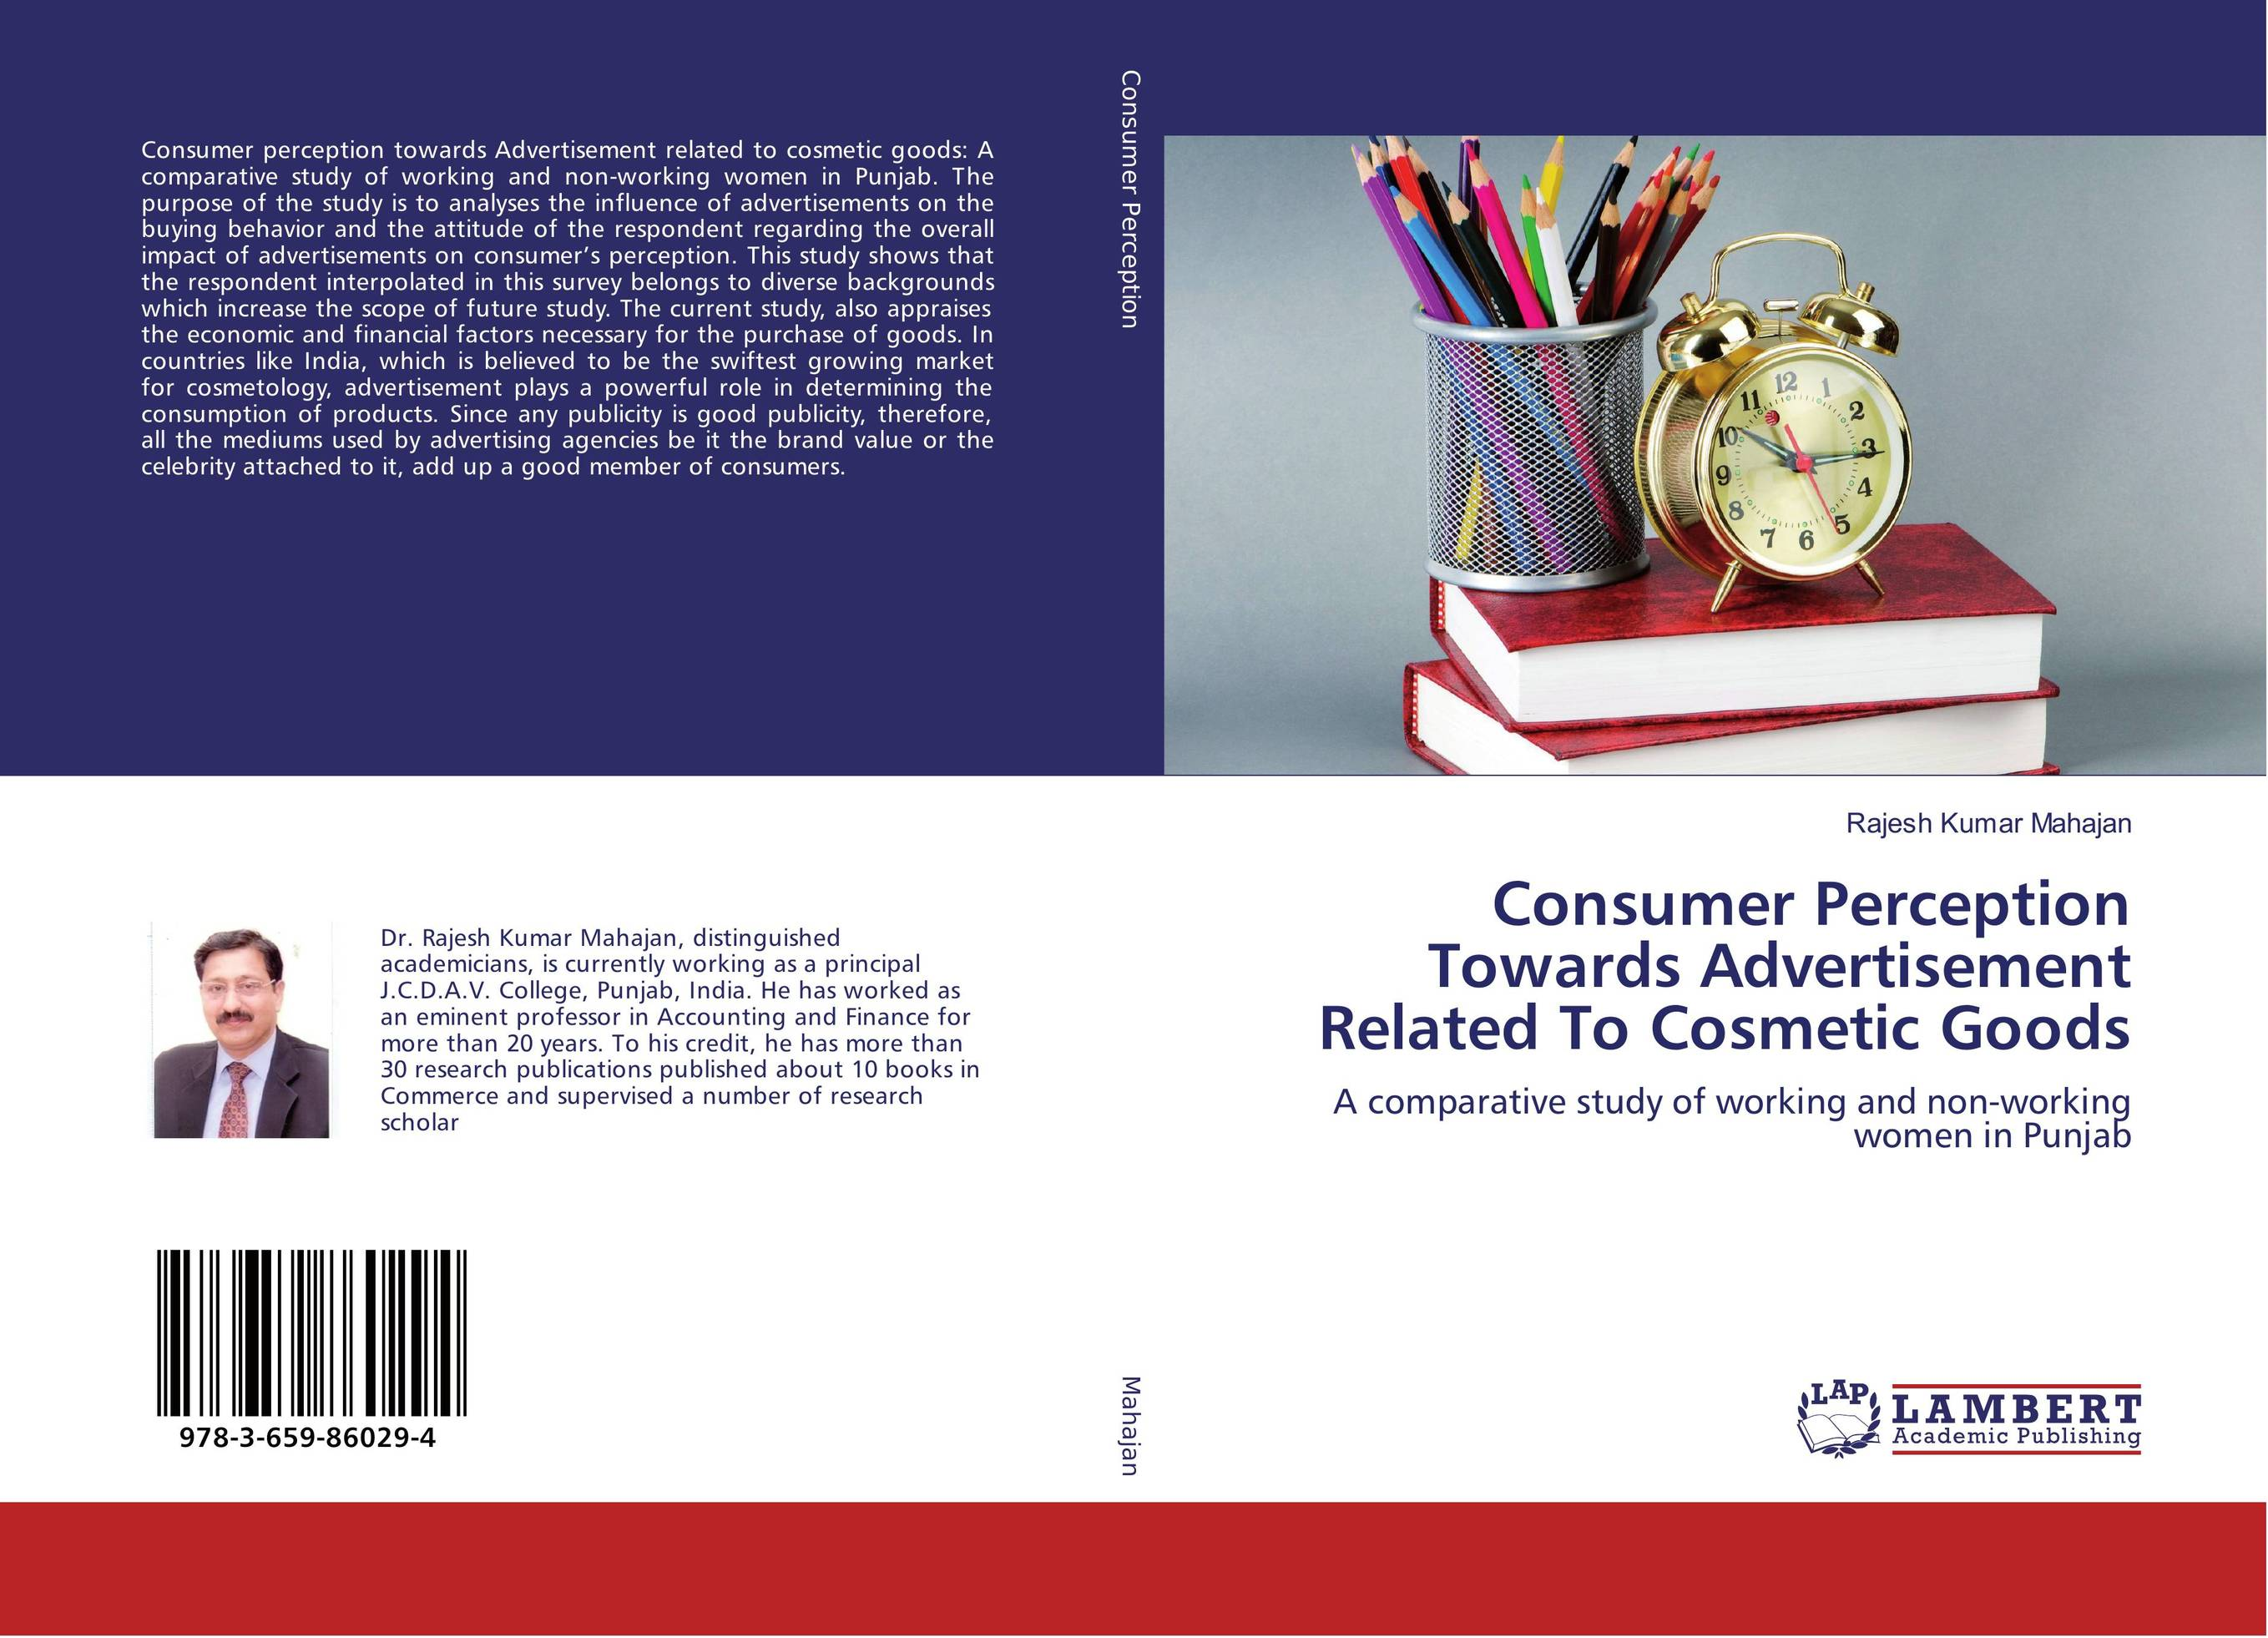 Consumer Perception Towards Advertisement Related To Cosmetic Goods кабель publicity hd580 hd600 hd650